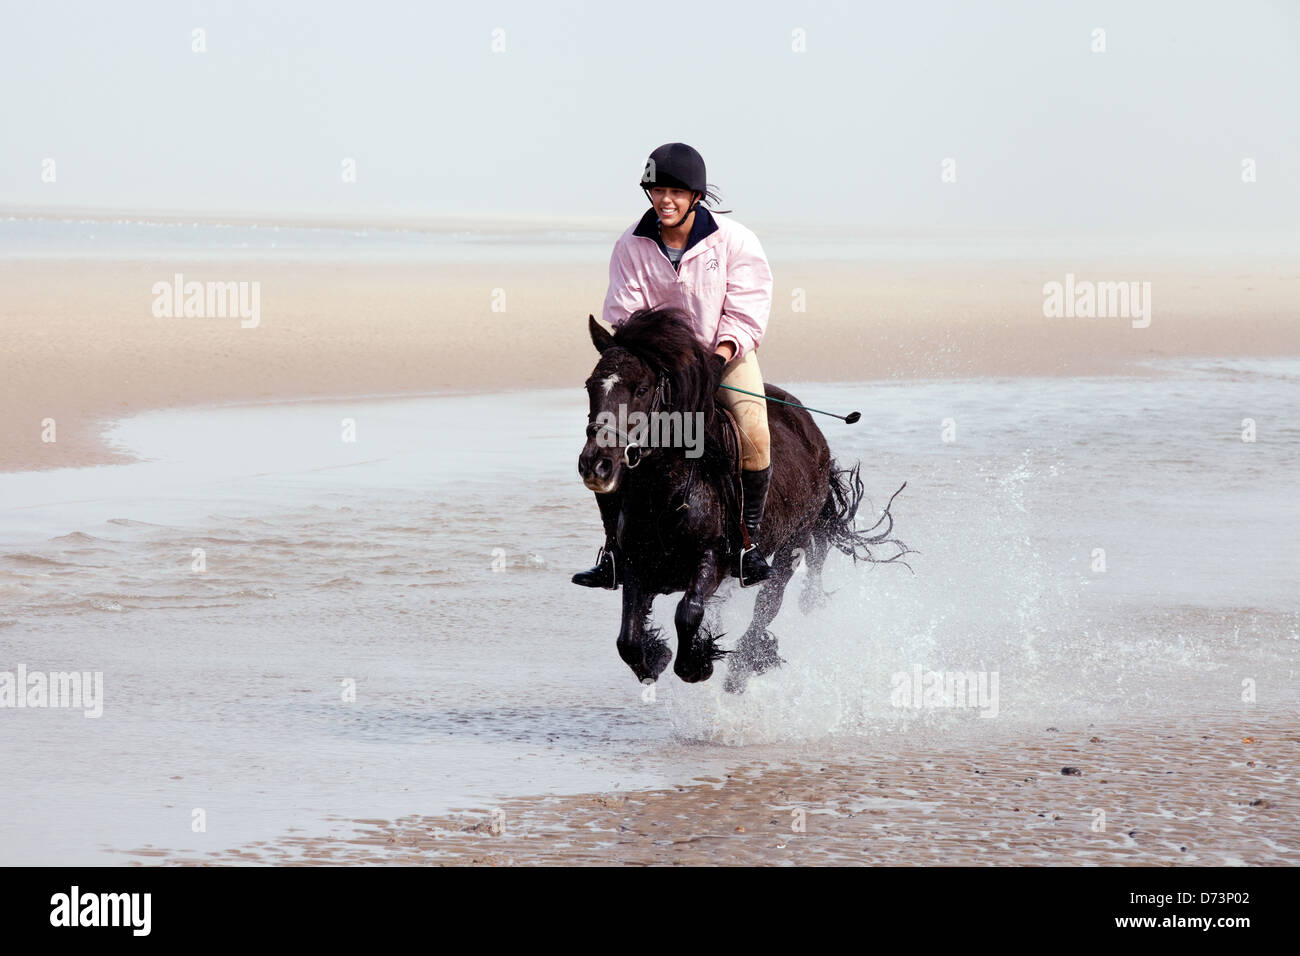 Une jeune femme équitation poney son animal de compagnie sur la plage, Holkham Beach Norfolk, UK Photo Stock